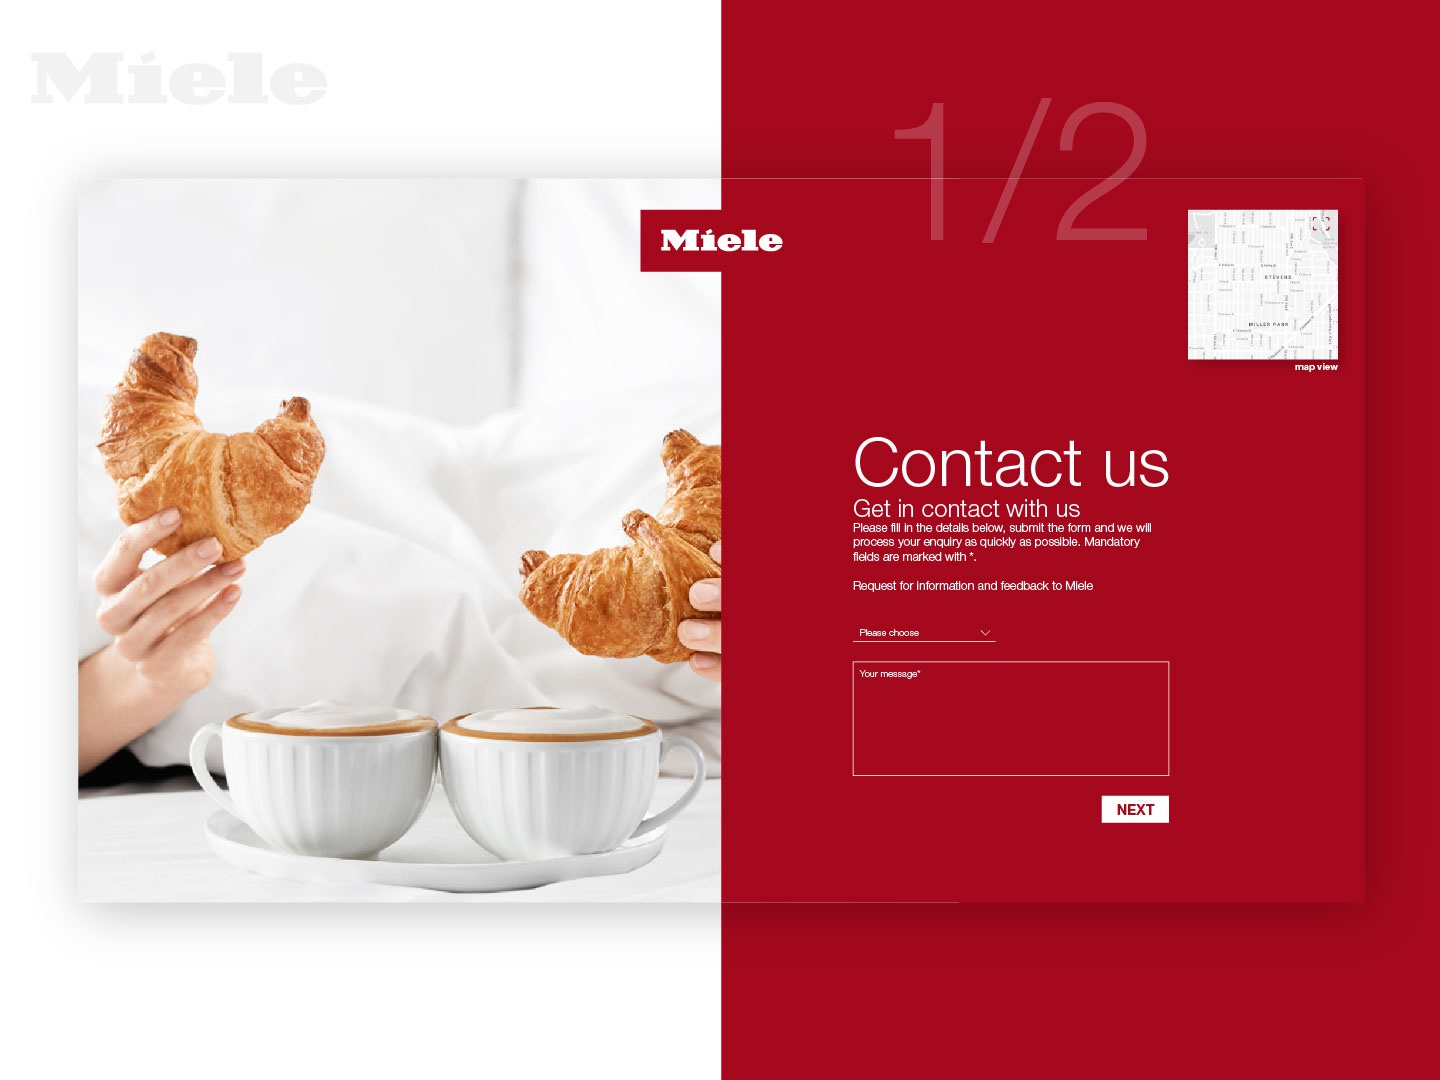 Contact Us form for Miele 1/2 028 ui webdesign dailyinspiration steps map design address kitchen brand helvetica message information fields enquiry fill page contact dailyui028 dailyui contact us